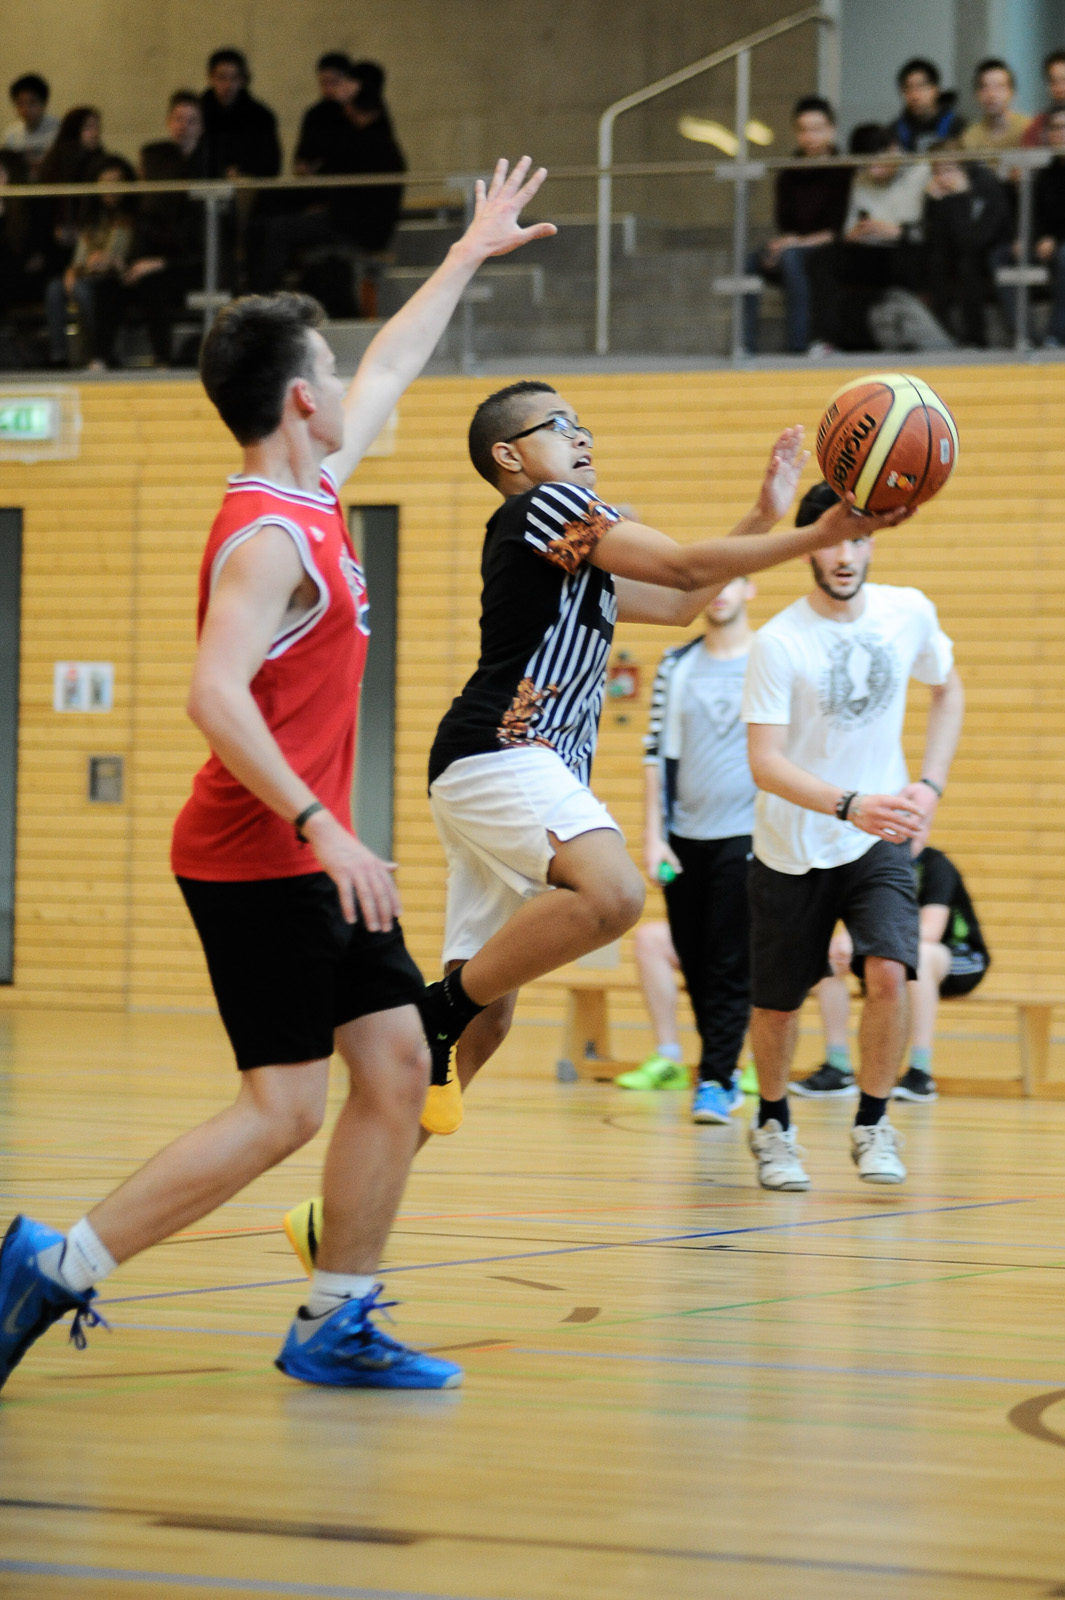 interclasses basket (2015)